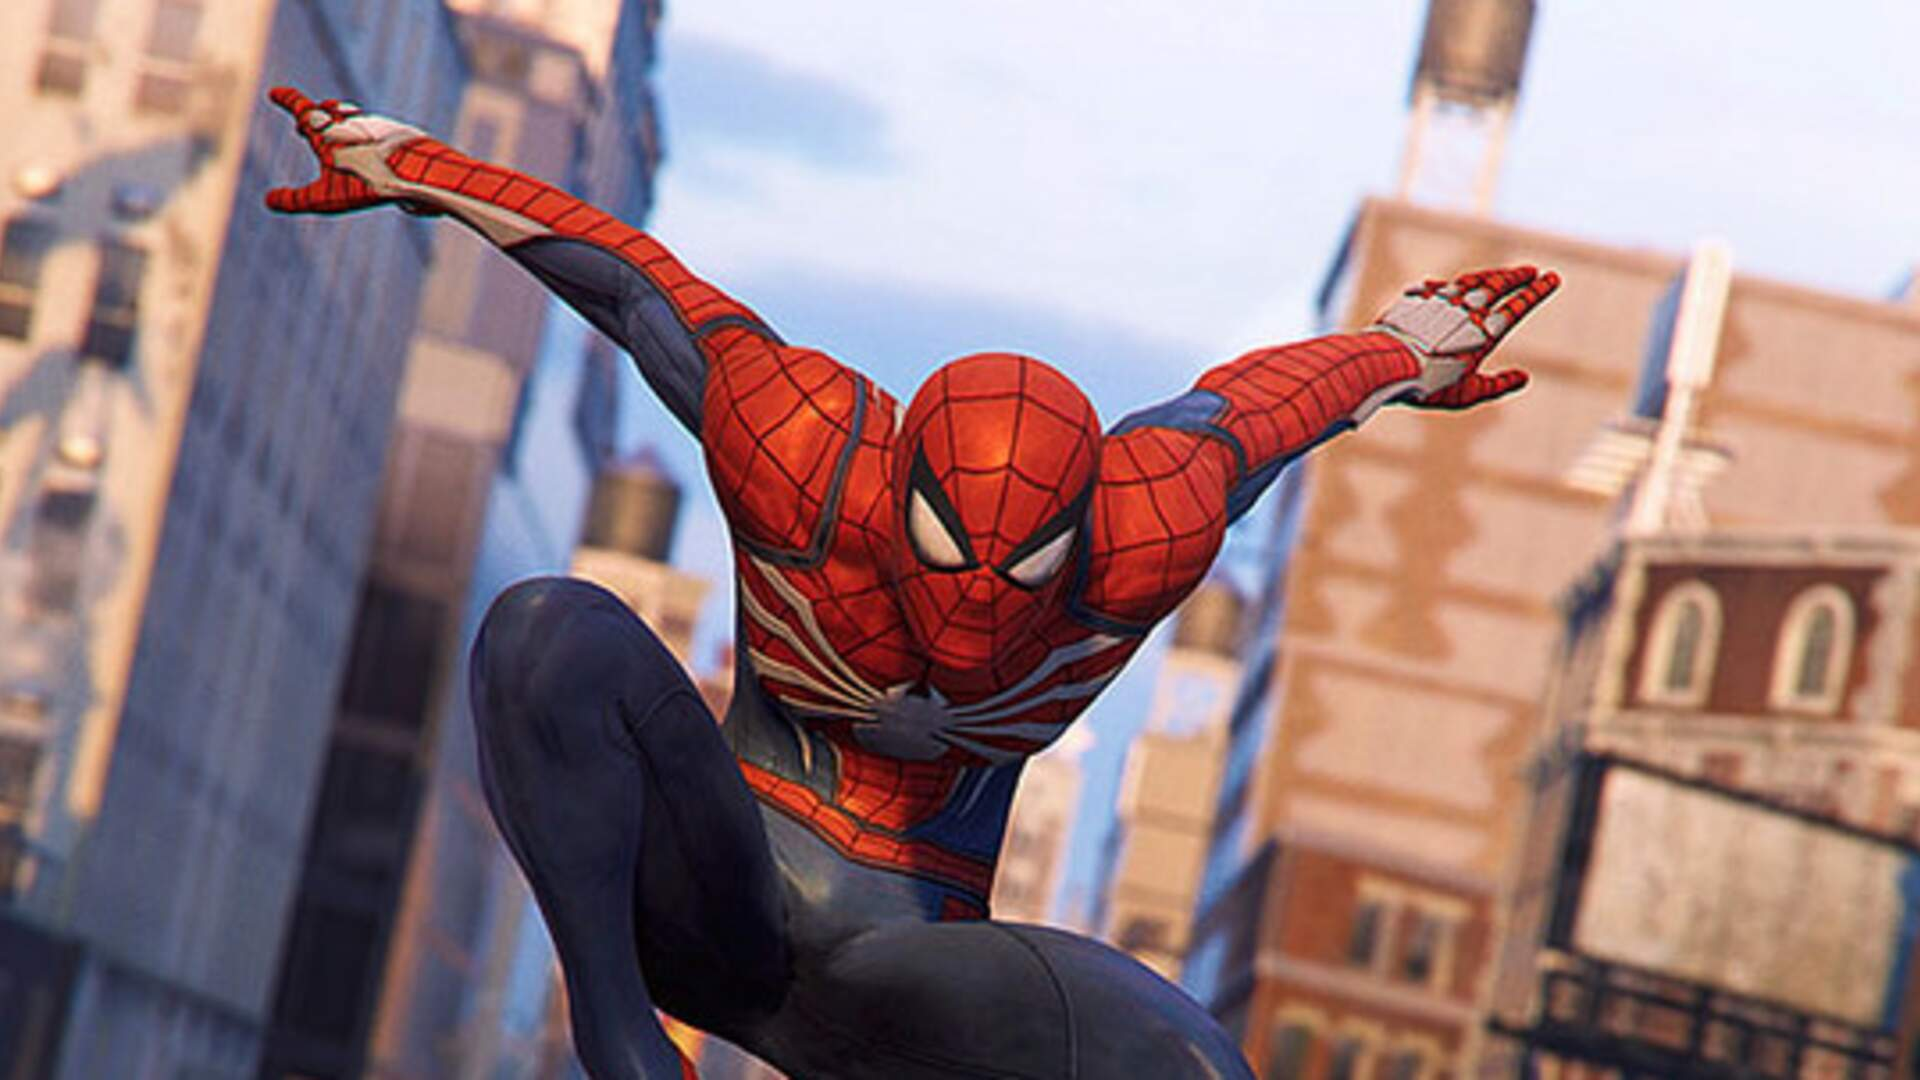 Spider-Man PS4 Update 1.07 and 1.08 Adds New Game Plus Mode and Two New Trophies